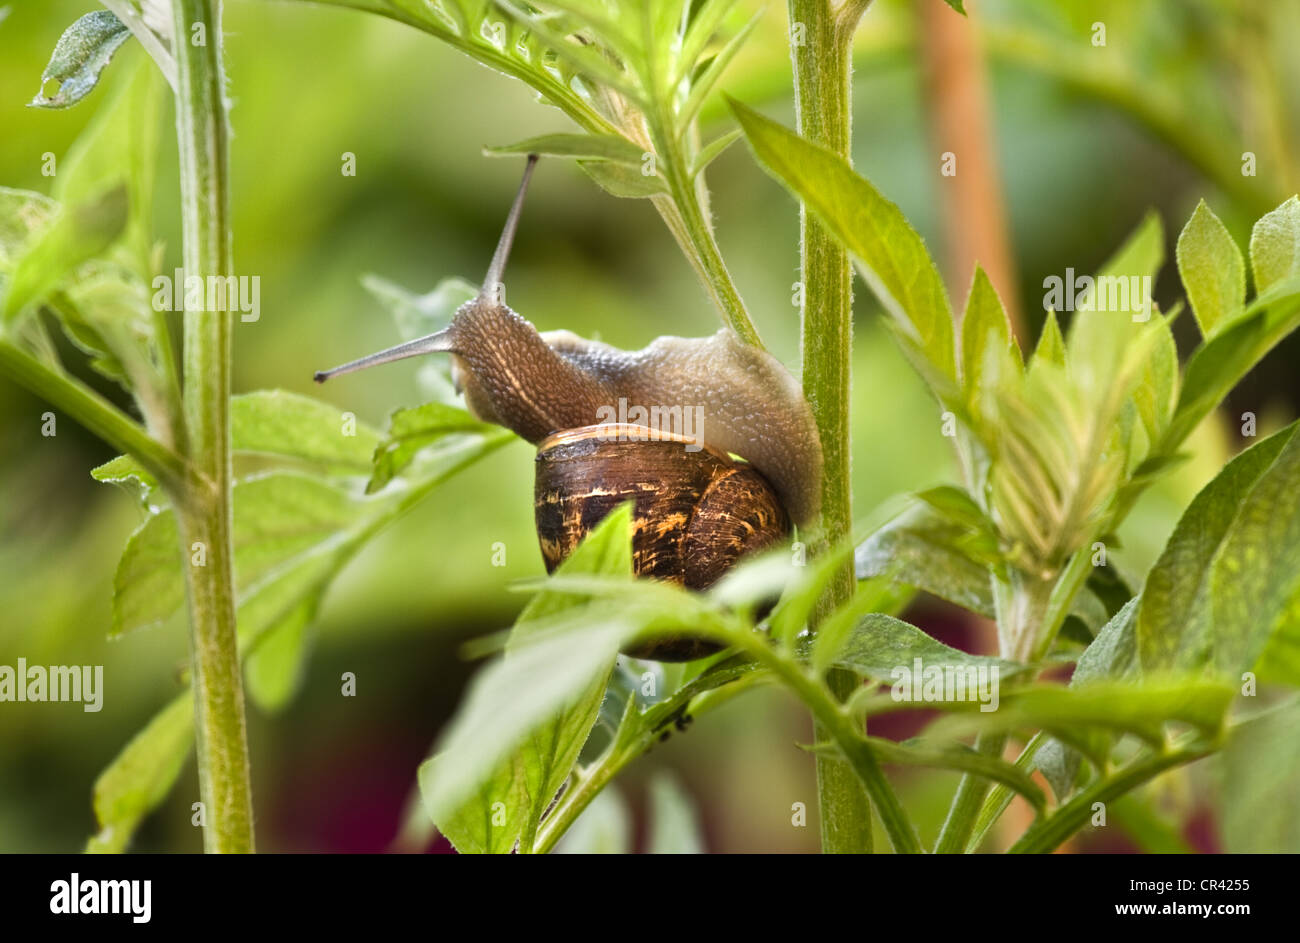 Snail eating from leaves and damaging a plant on early morning in spring - Stock Image